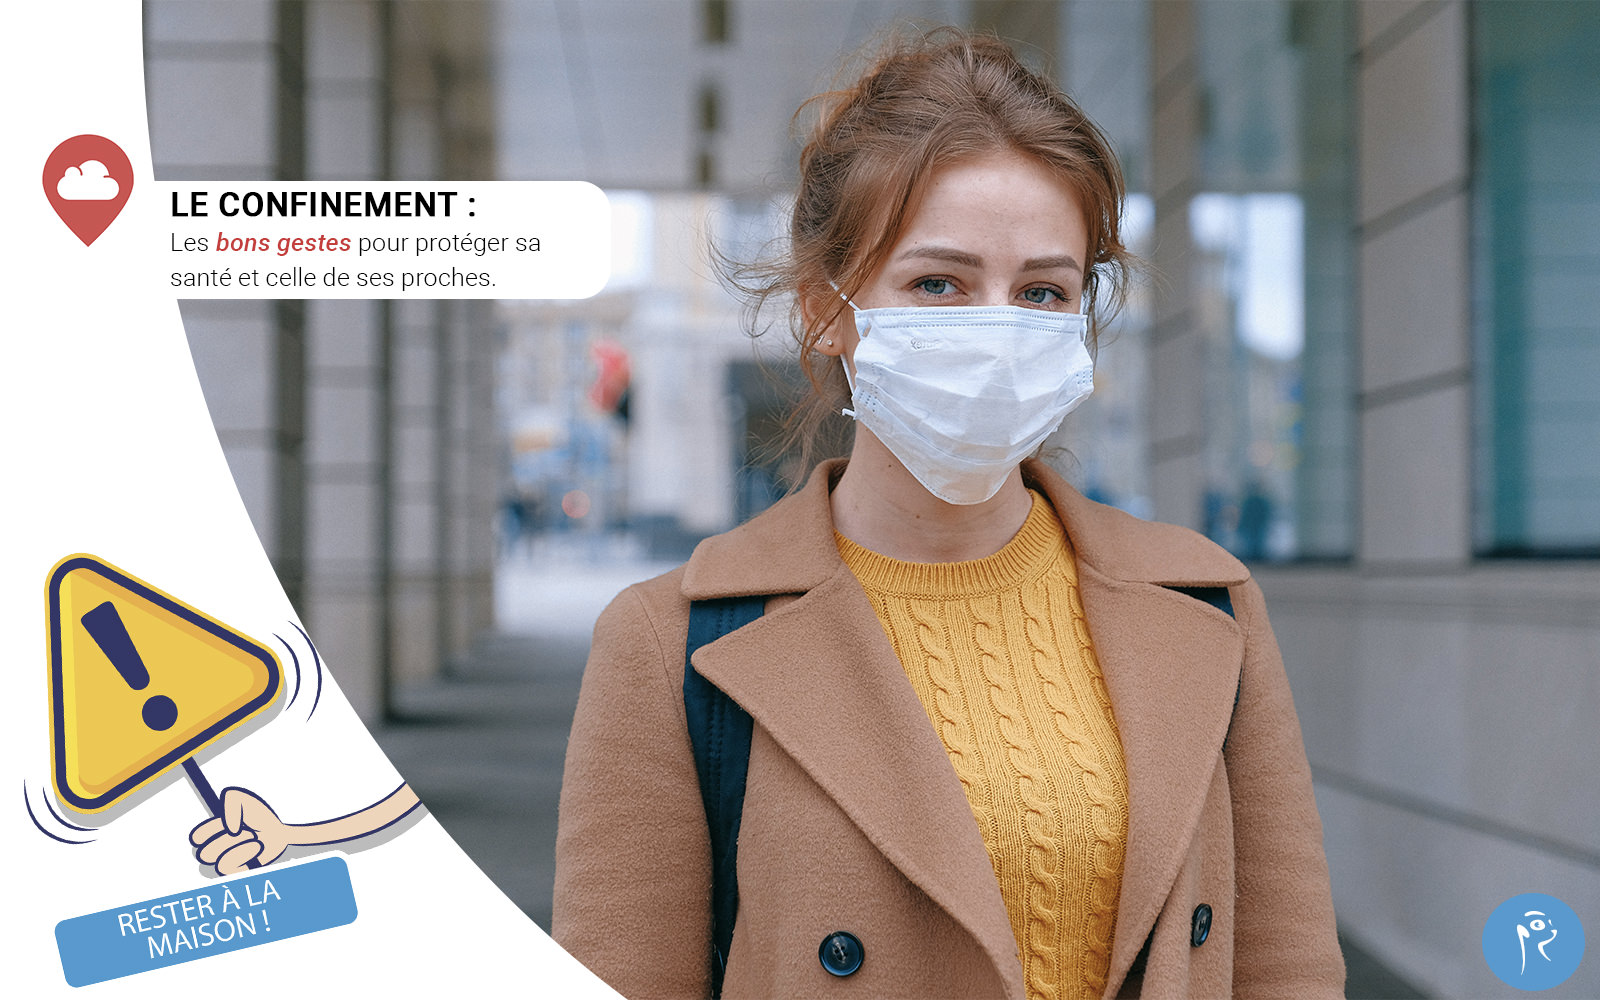 Quarantine: the right actions to protect your health and that of your loved ones